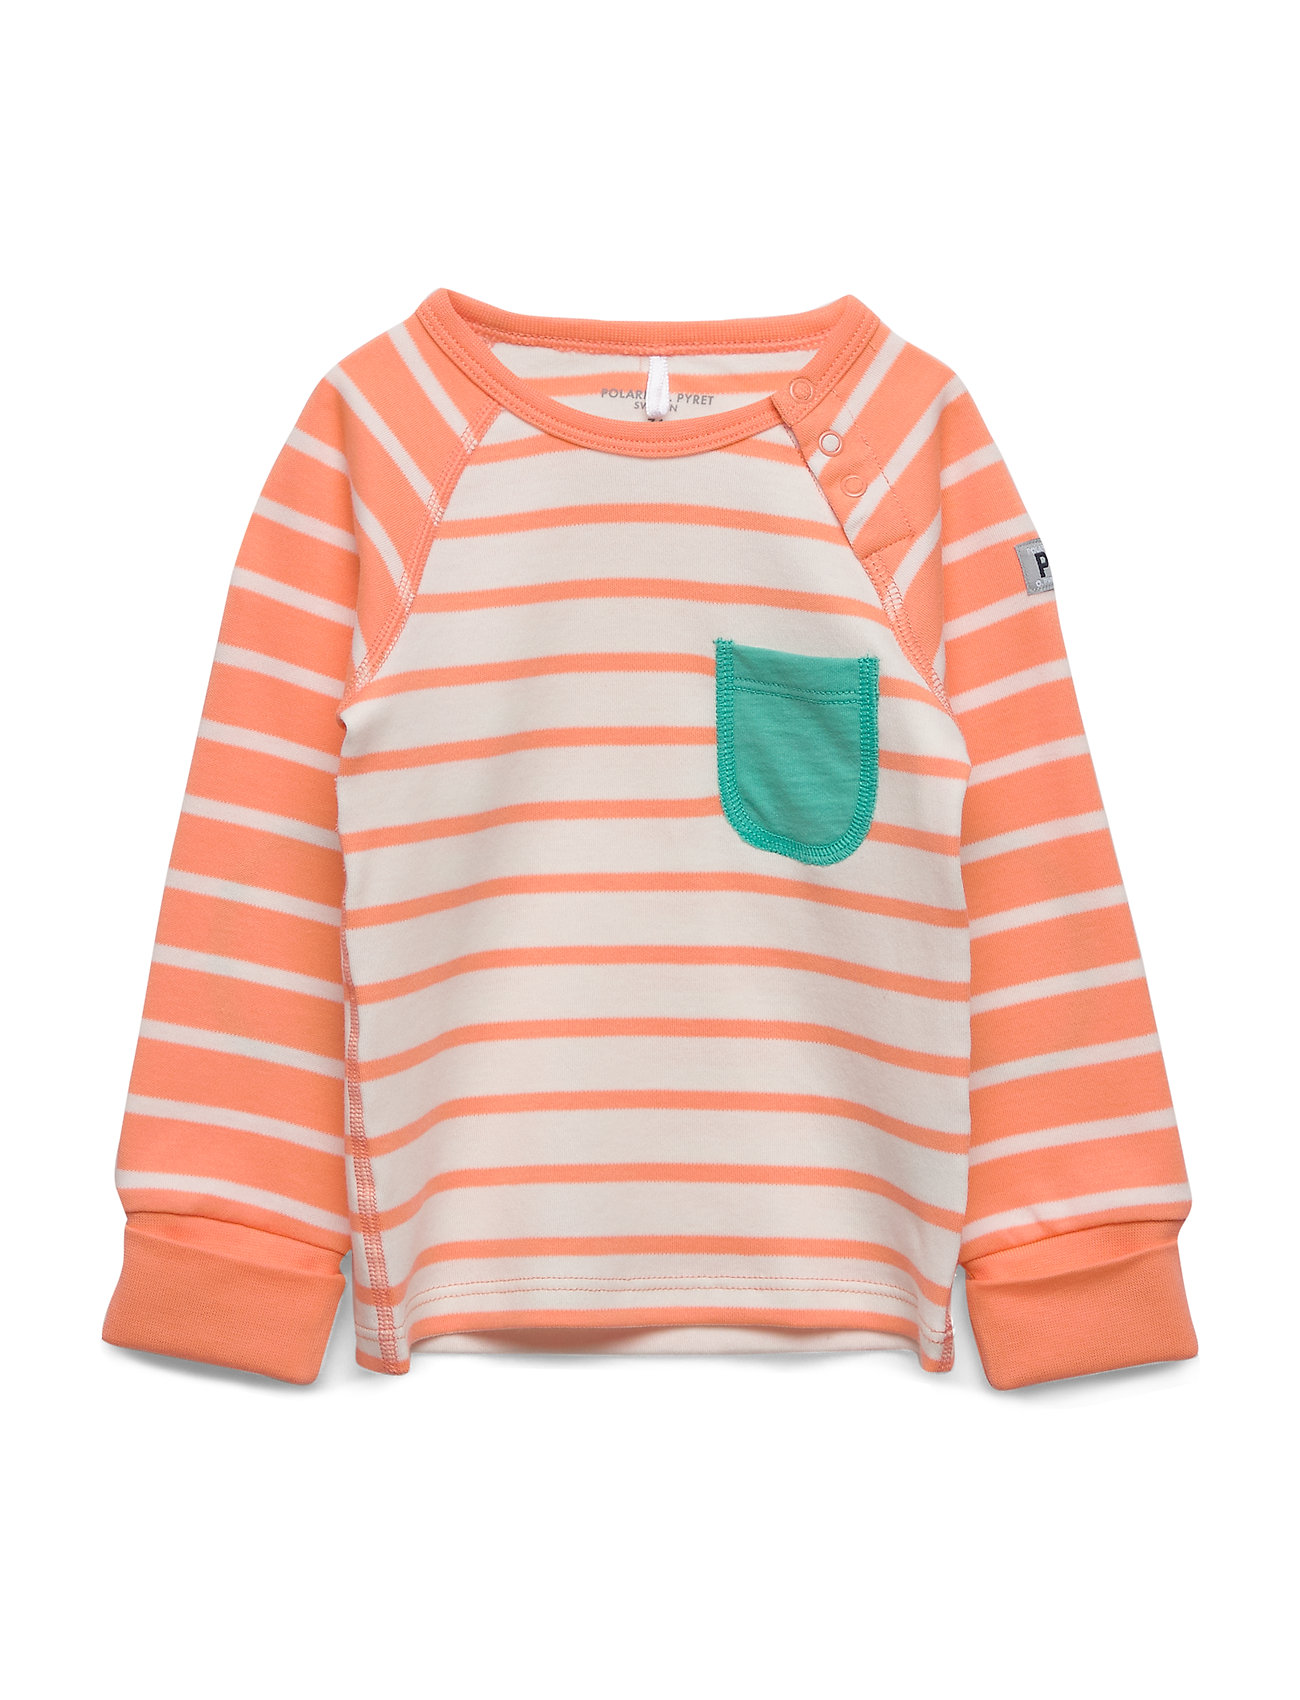 Polarn O. Pyret Top L/S Striped Baby - CANTALOUPE